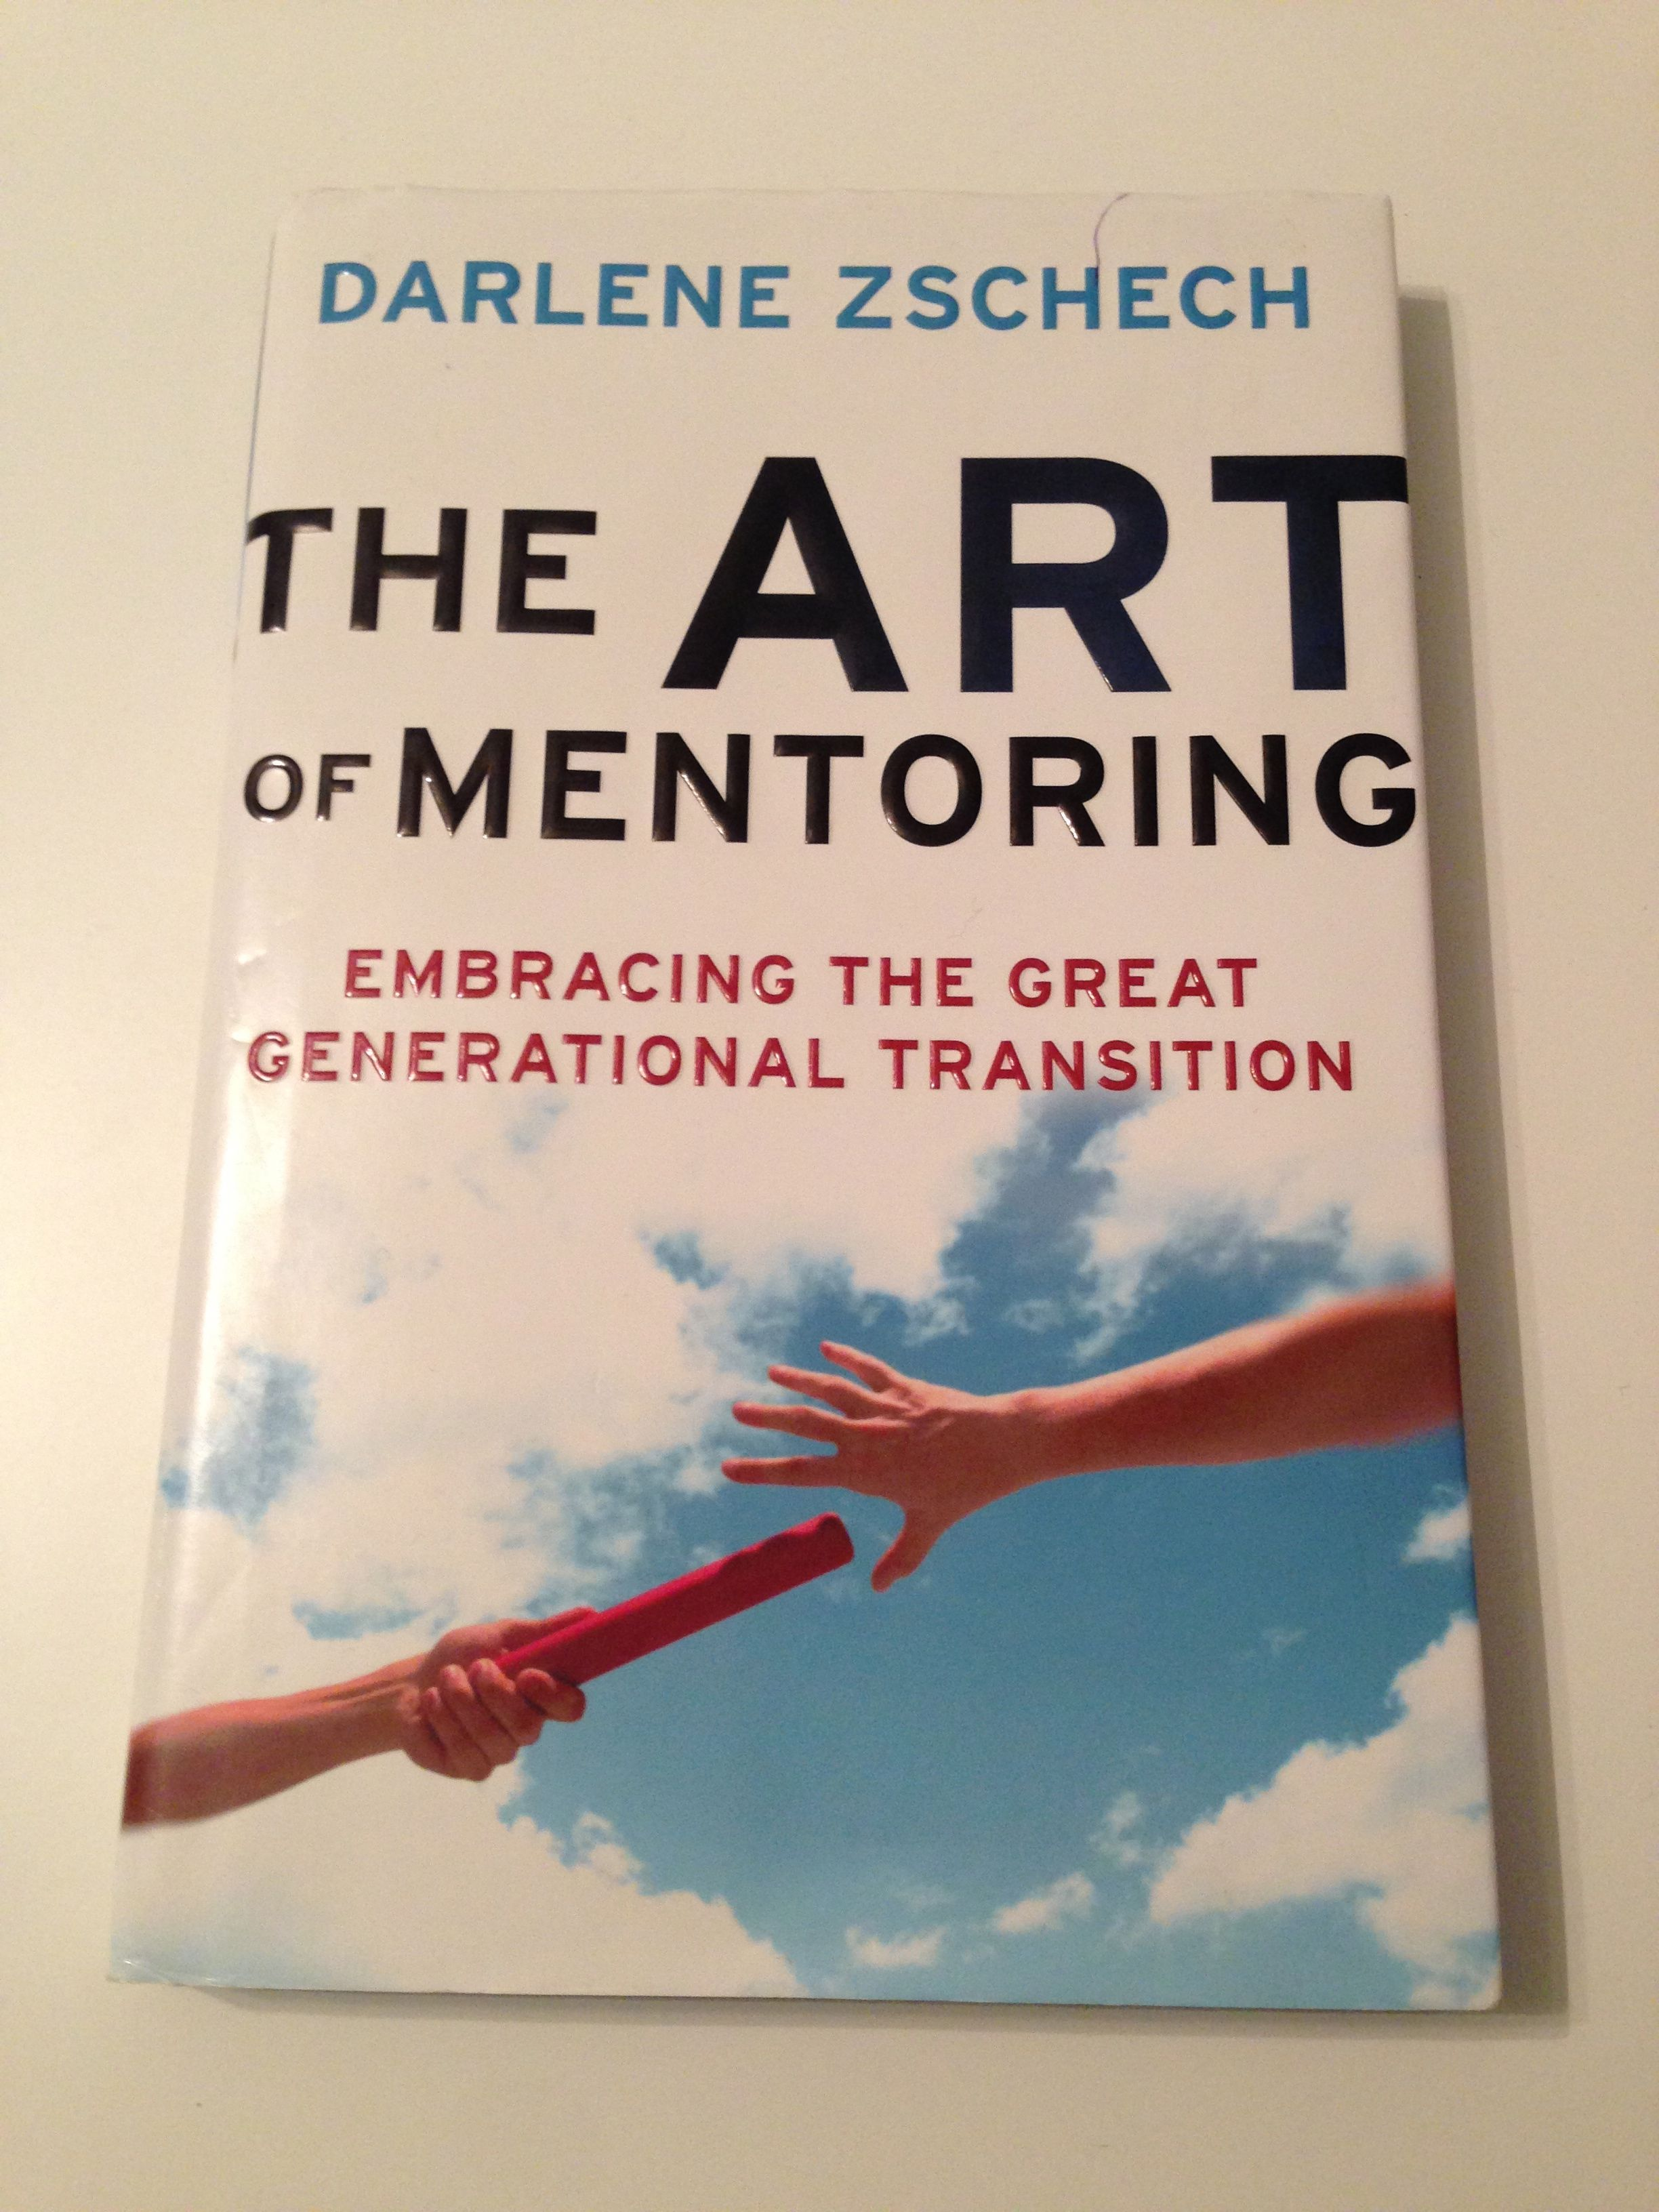 The Art of Mentoring is a book that I purchased in Winnipeg at Springs Conference after seeing Darlene Zschech speak and sing.  She is an amazing woman and this book inspired me to invest my life into the next generation through mentoring.  She mentions in the book that she had a goal to replace herself 10 times in her ministry and she said if she did that her life would count for something.  Excellent book for all leaders.